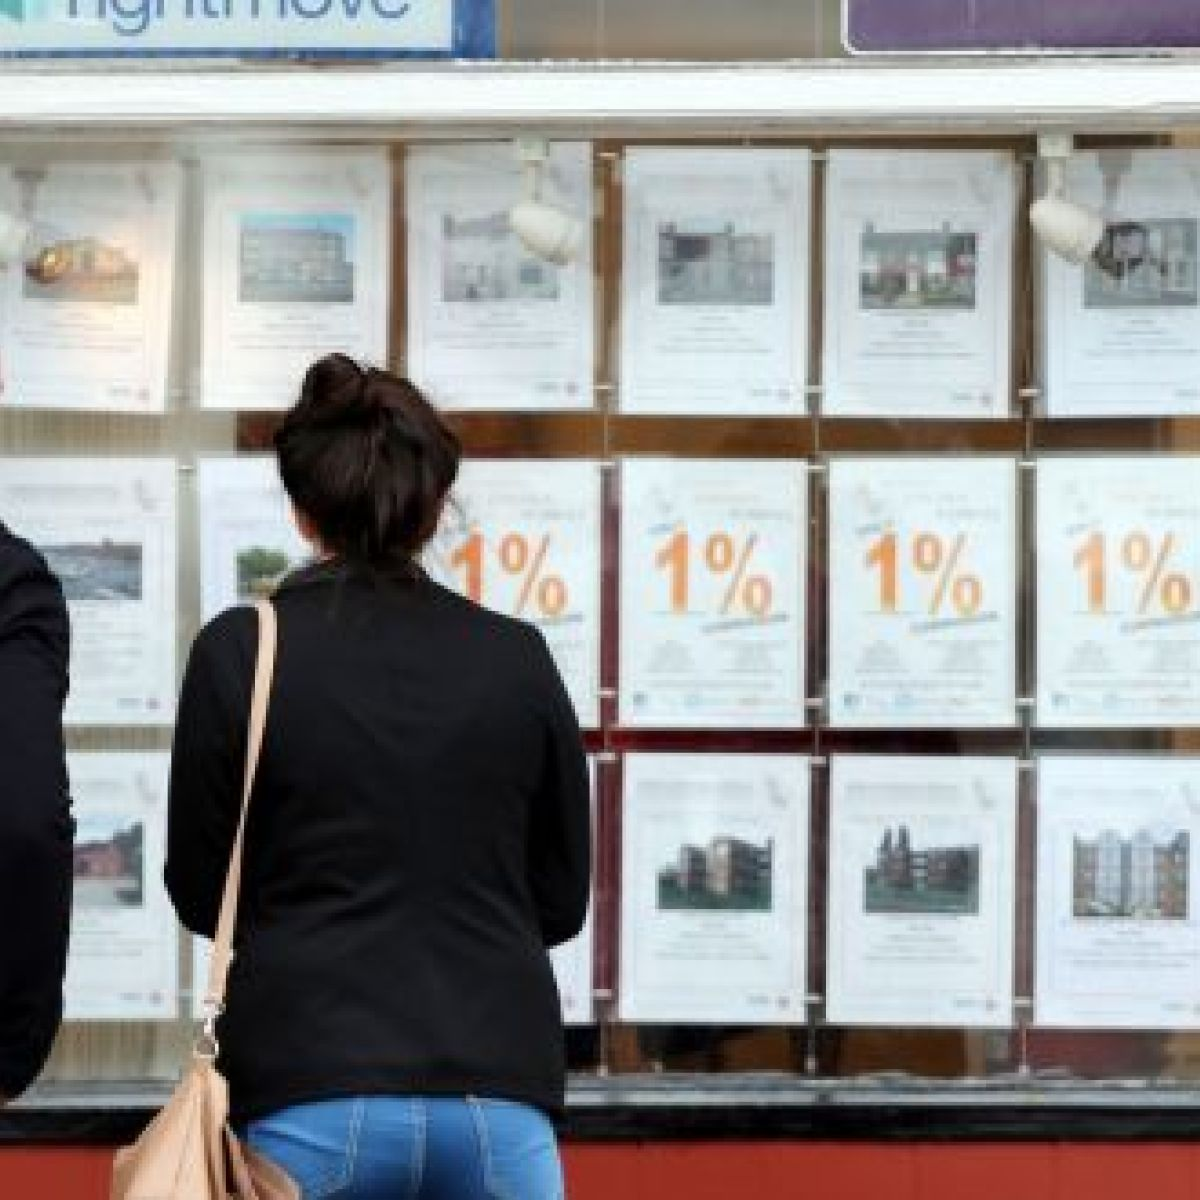 irishtimes.com - Eoin Burke-Kennedy - Mortgage rates in Ireland are highest in Europe